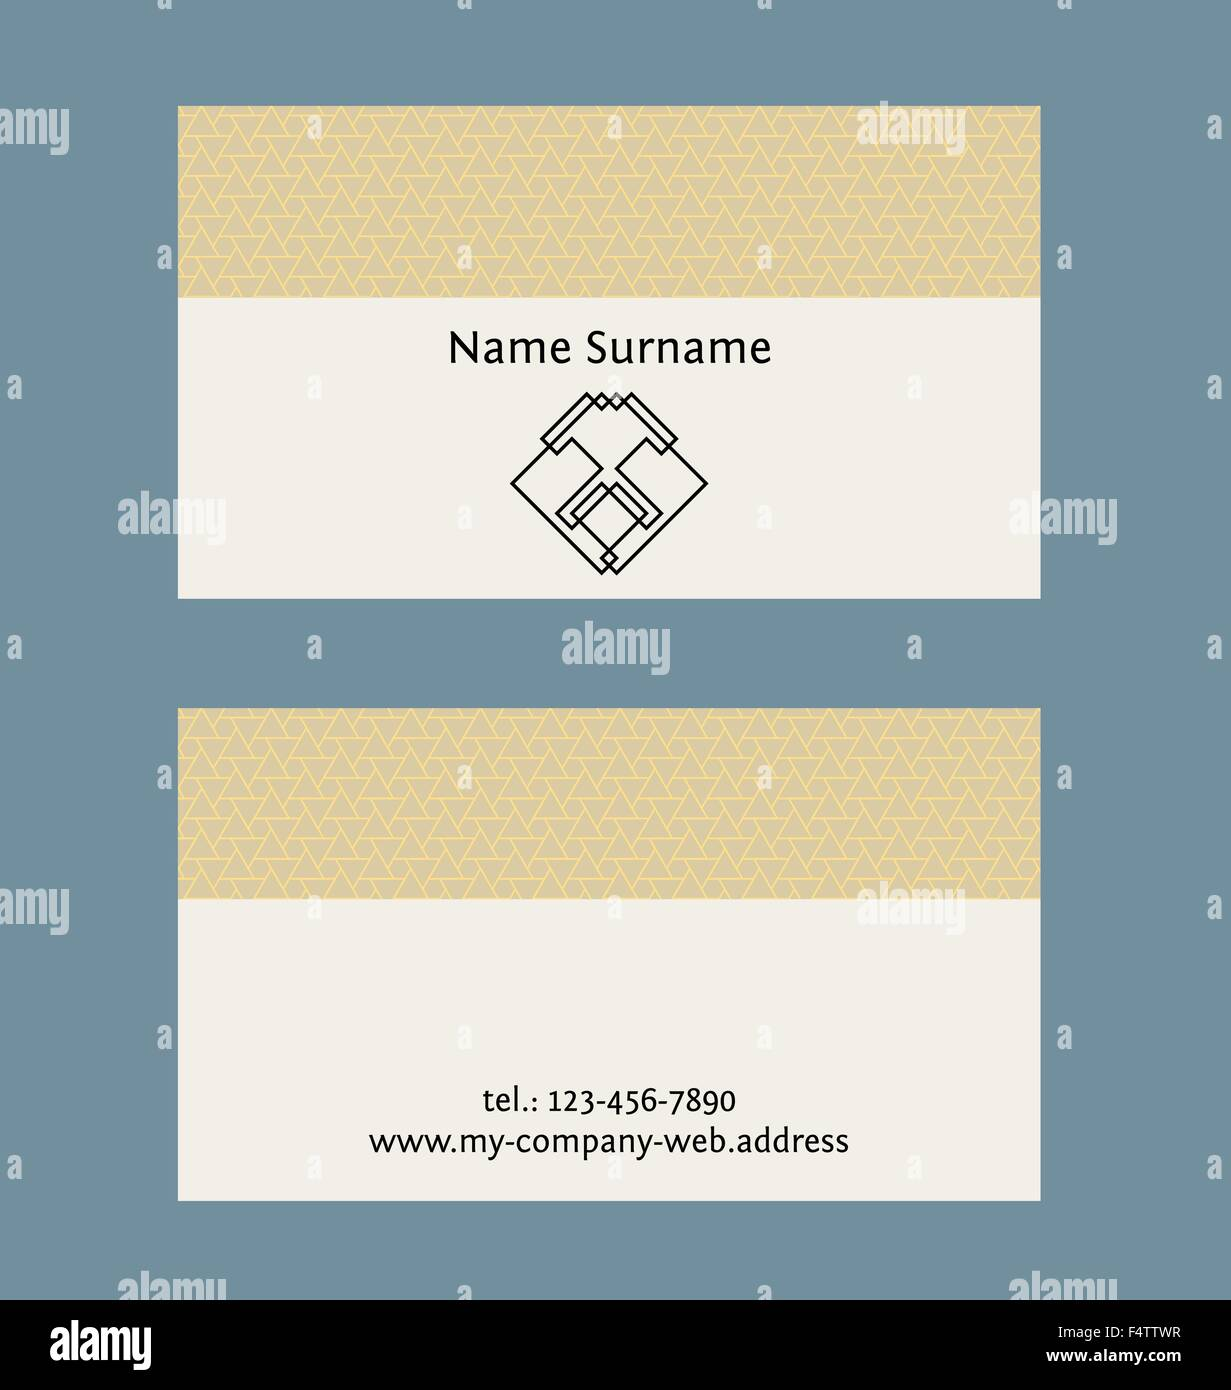 Business card layout linear geometric logo and pattern editable business card layout linear geometric logo and pattern editable design template magicingreecefo Choice Image